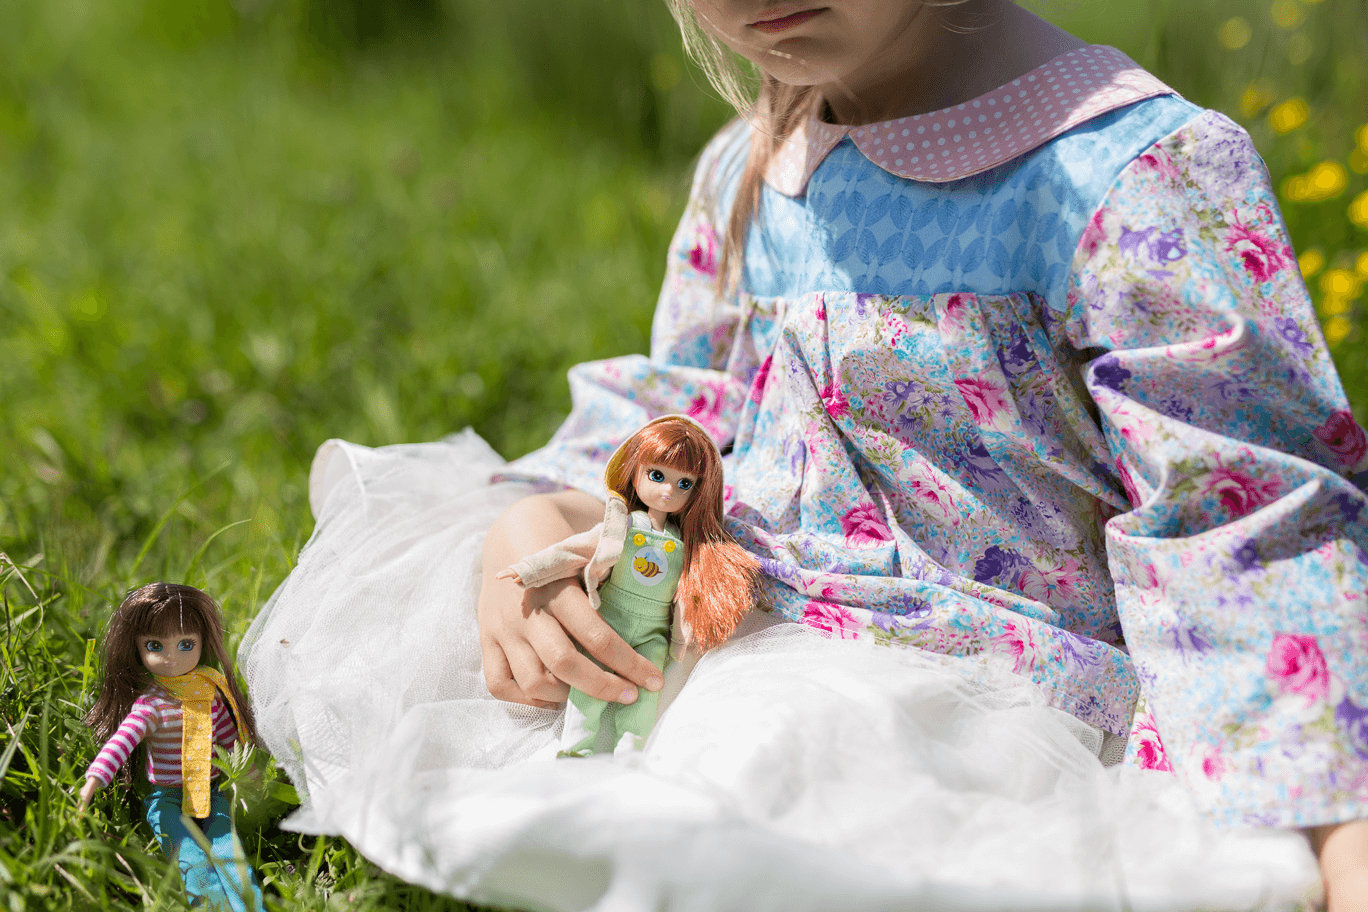 girl playing with dolls.